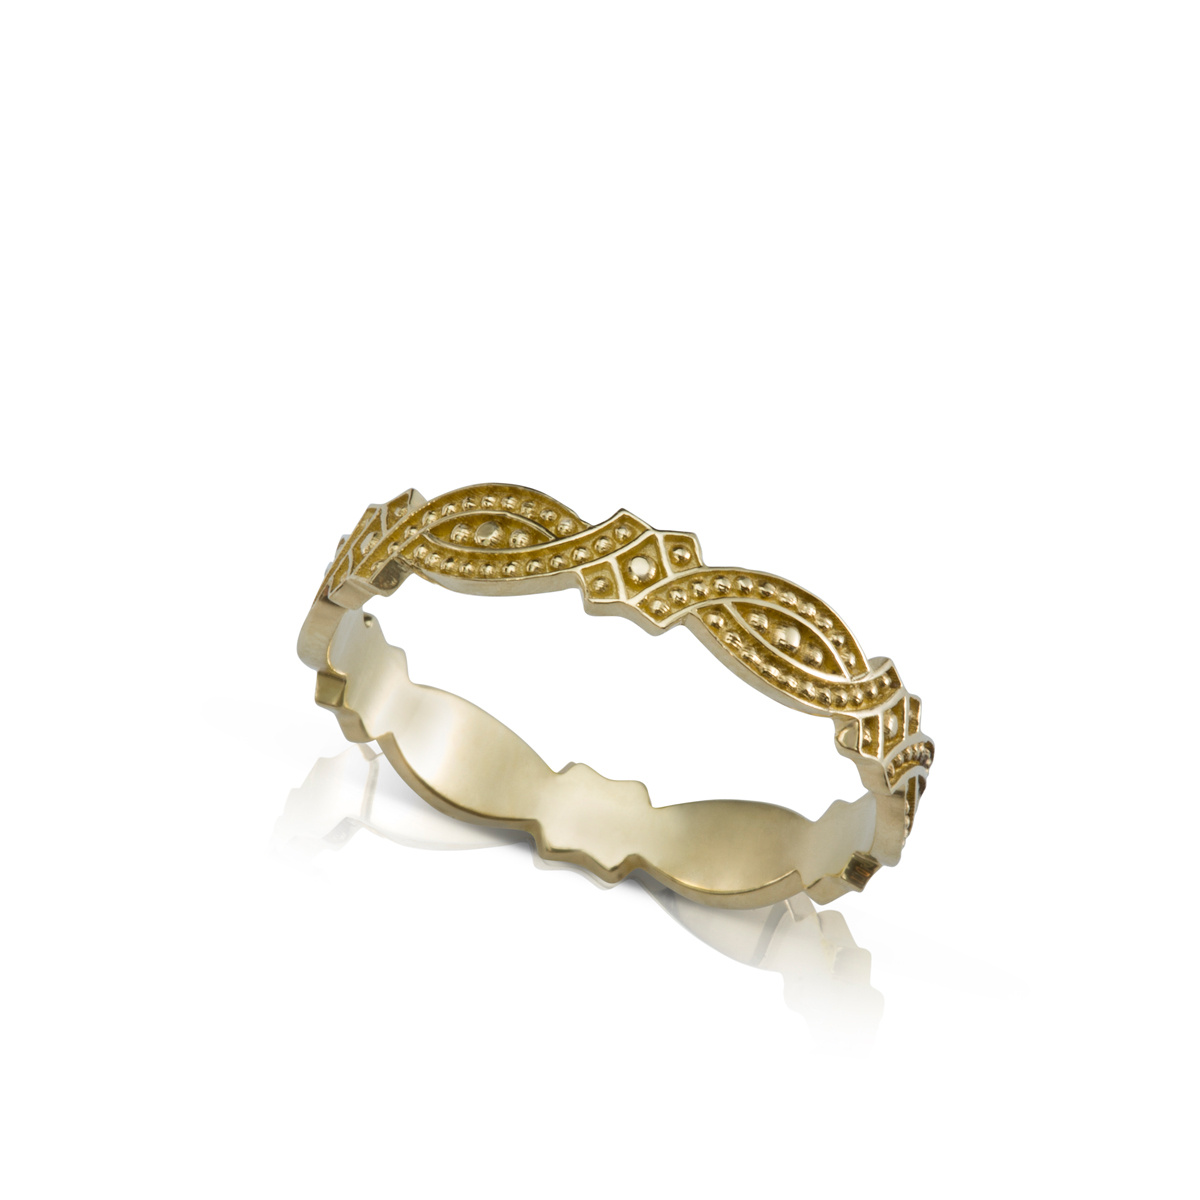 A special gold ring in an oriental style